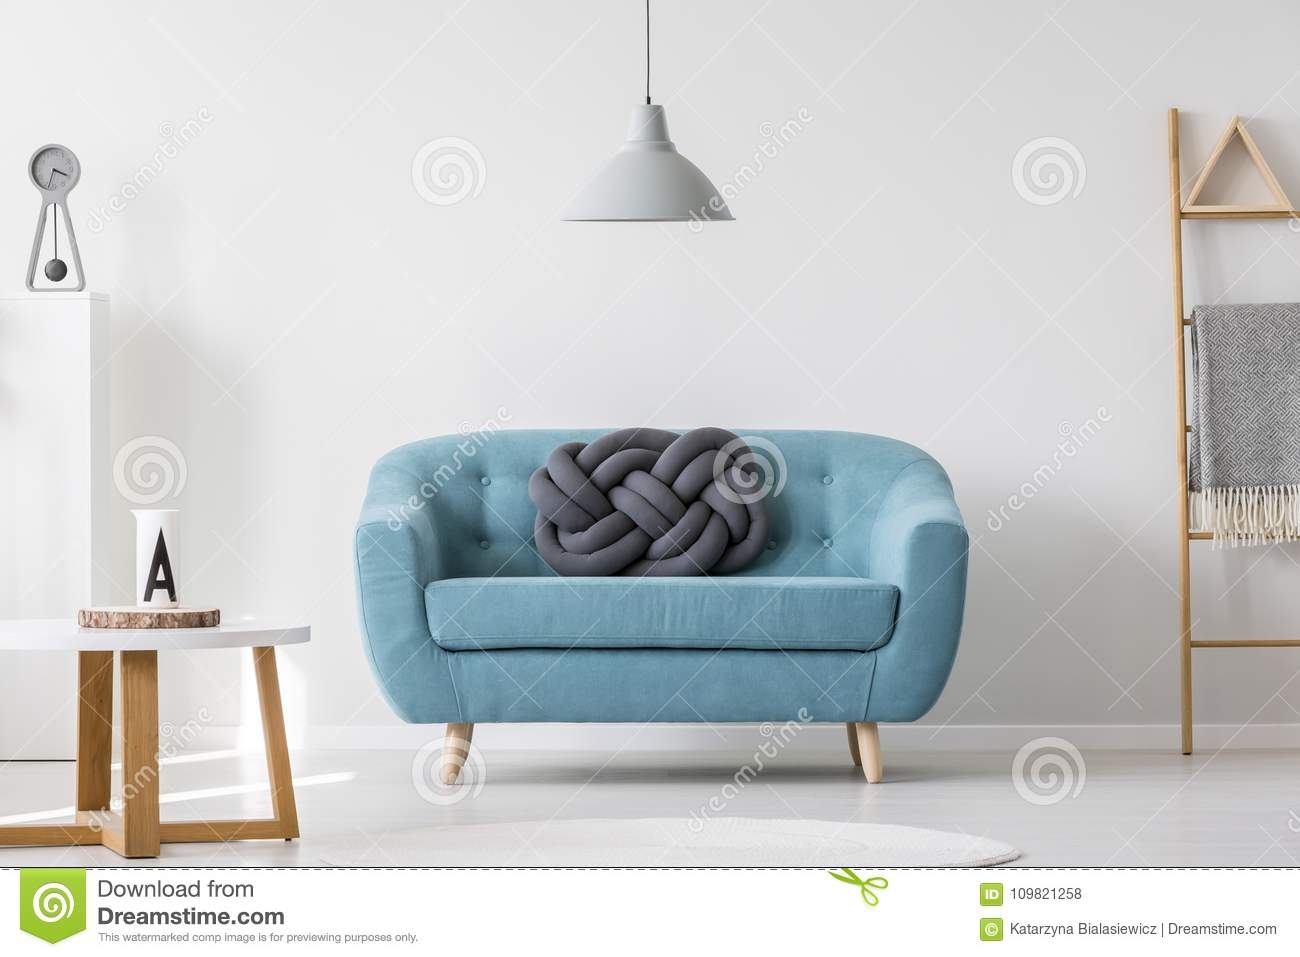 Turquoise Living Room Interior Stock Photo - Image of lamp, coaster ...